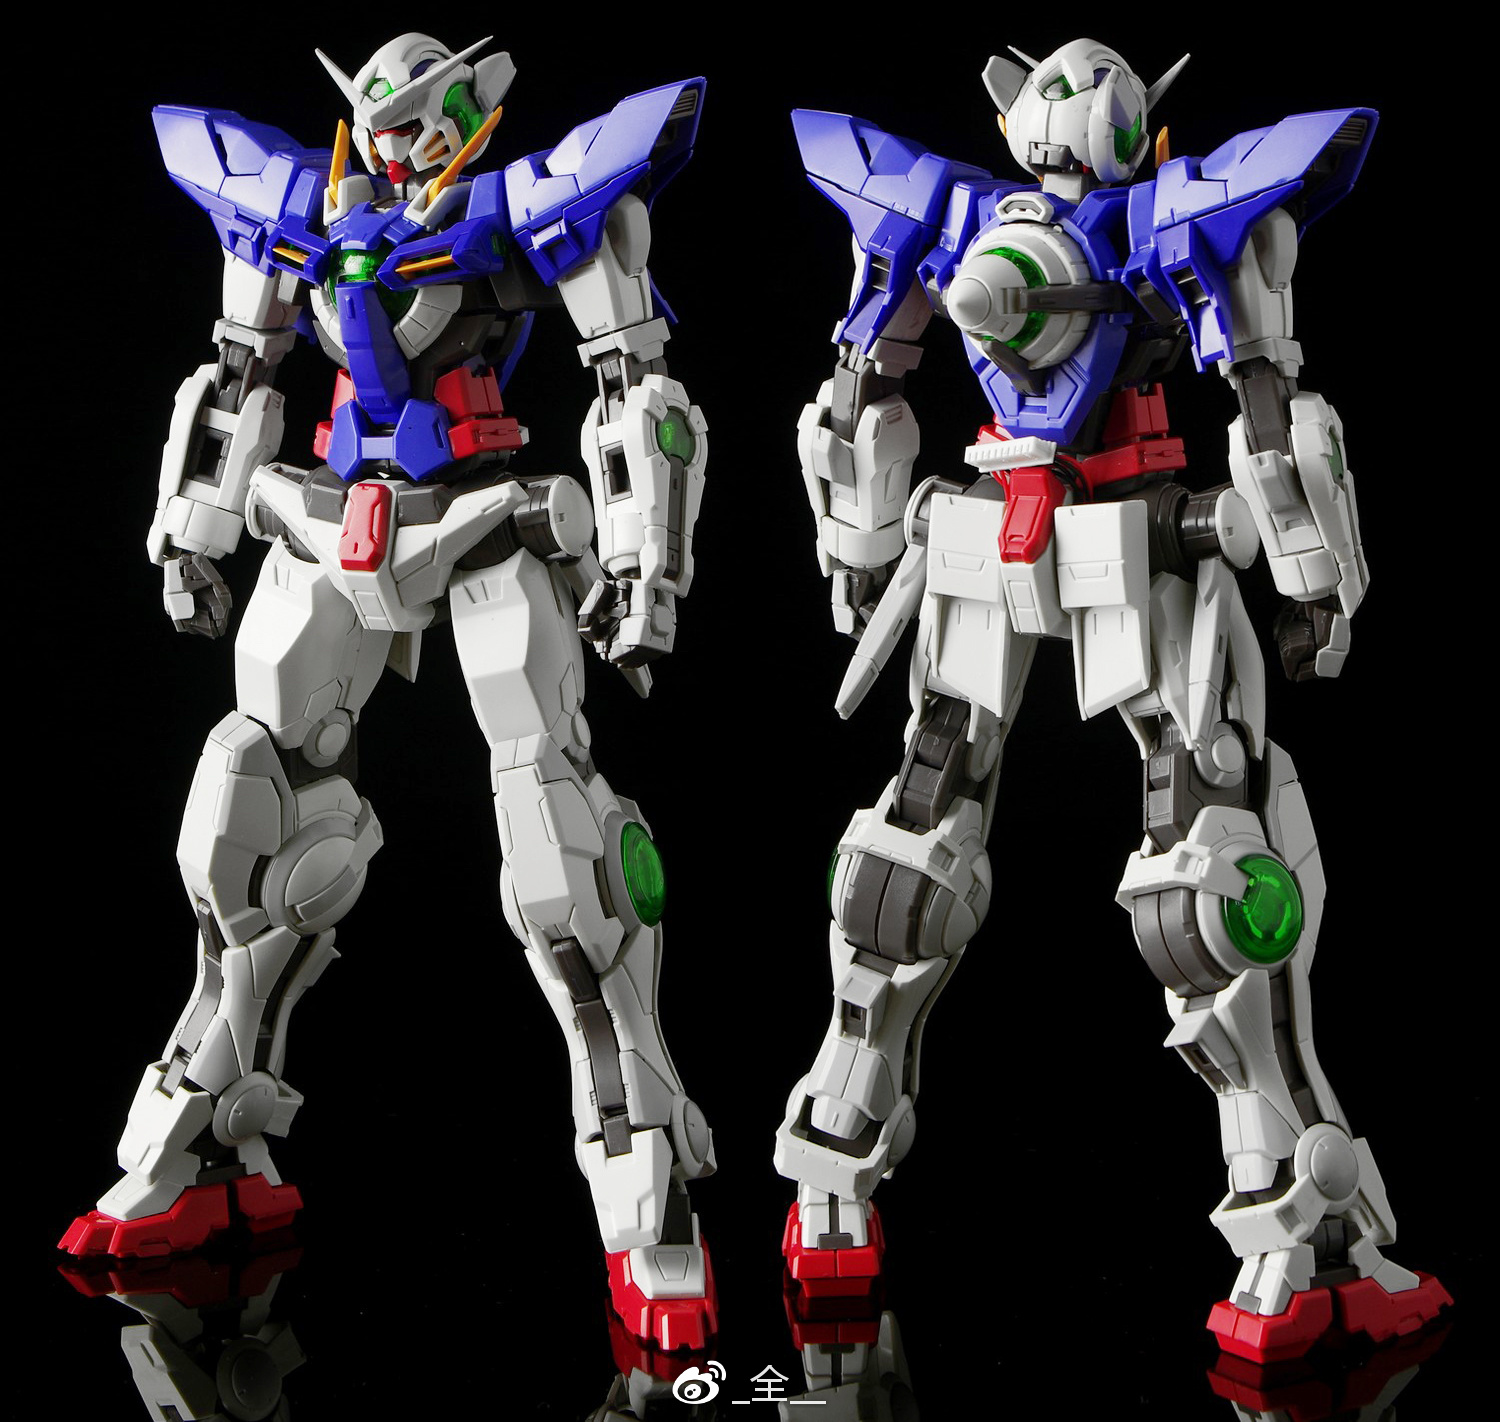 S269_mg_exia_led_hobby_star_inask_083.jpg